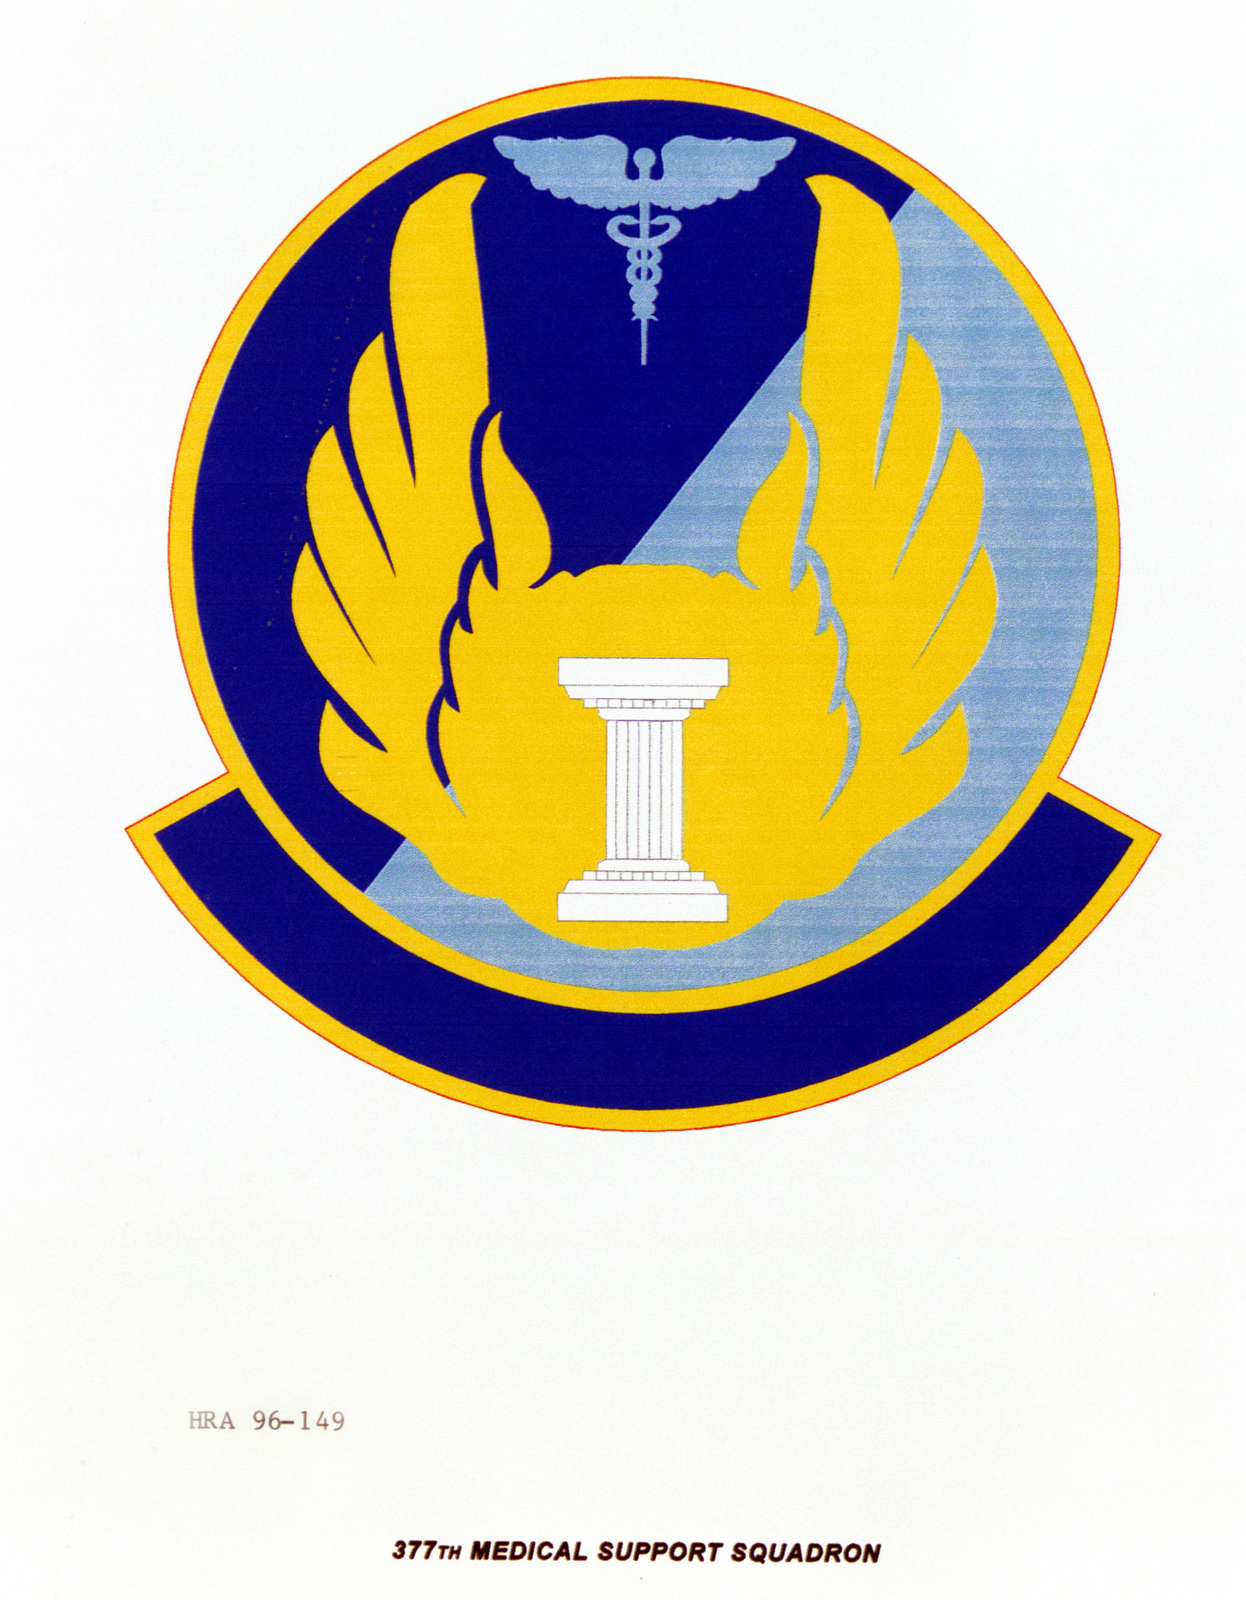 Air Force Organizational Emblem. 377th Medical Support Squadron Exact Date Shot Unknown